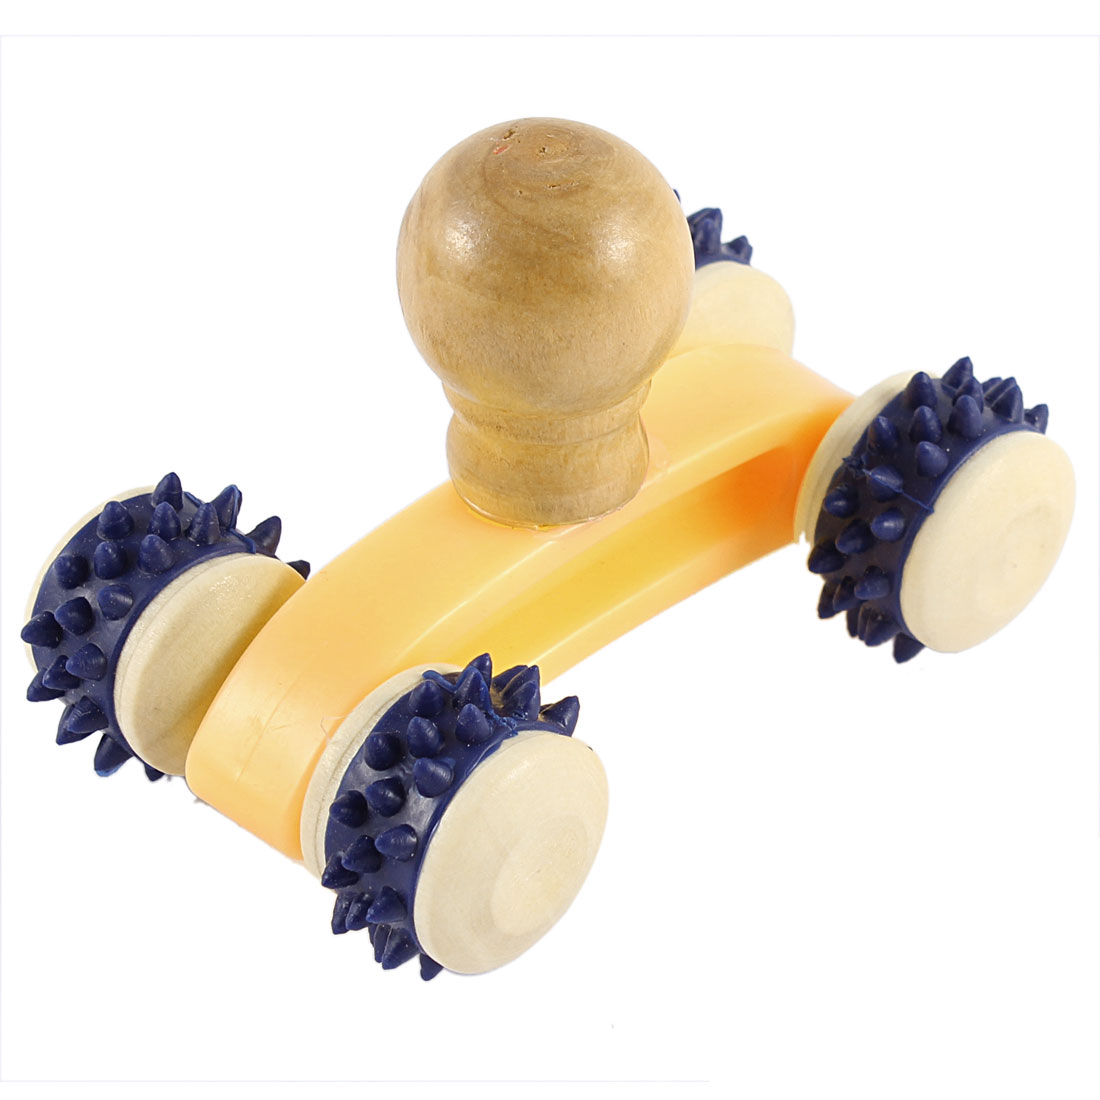 Wooden Handheld Massager Body Muscle Relaxation Massage Roller Tool